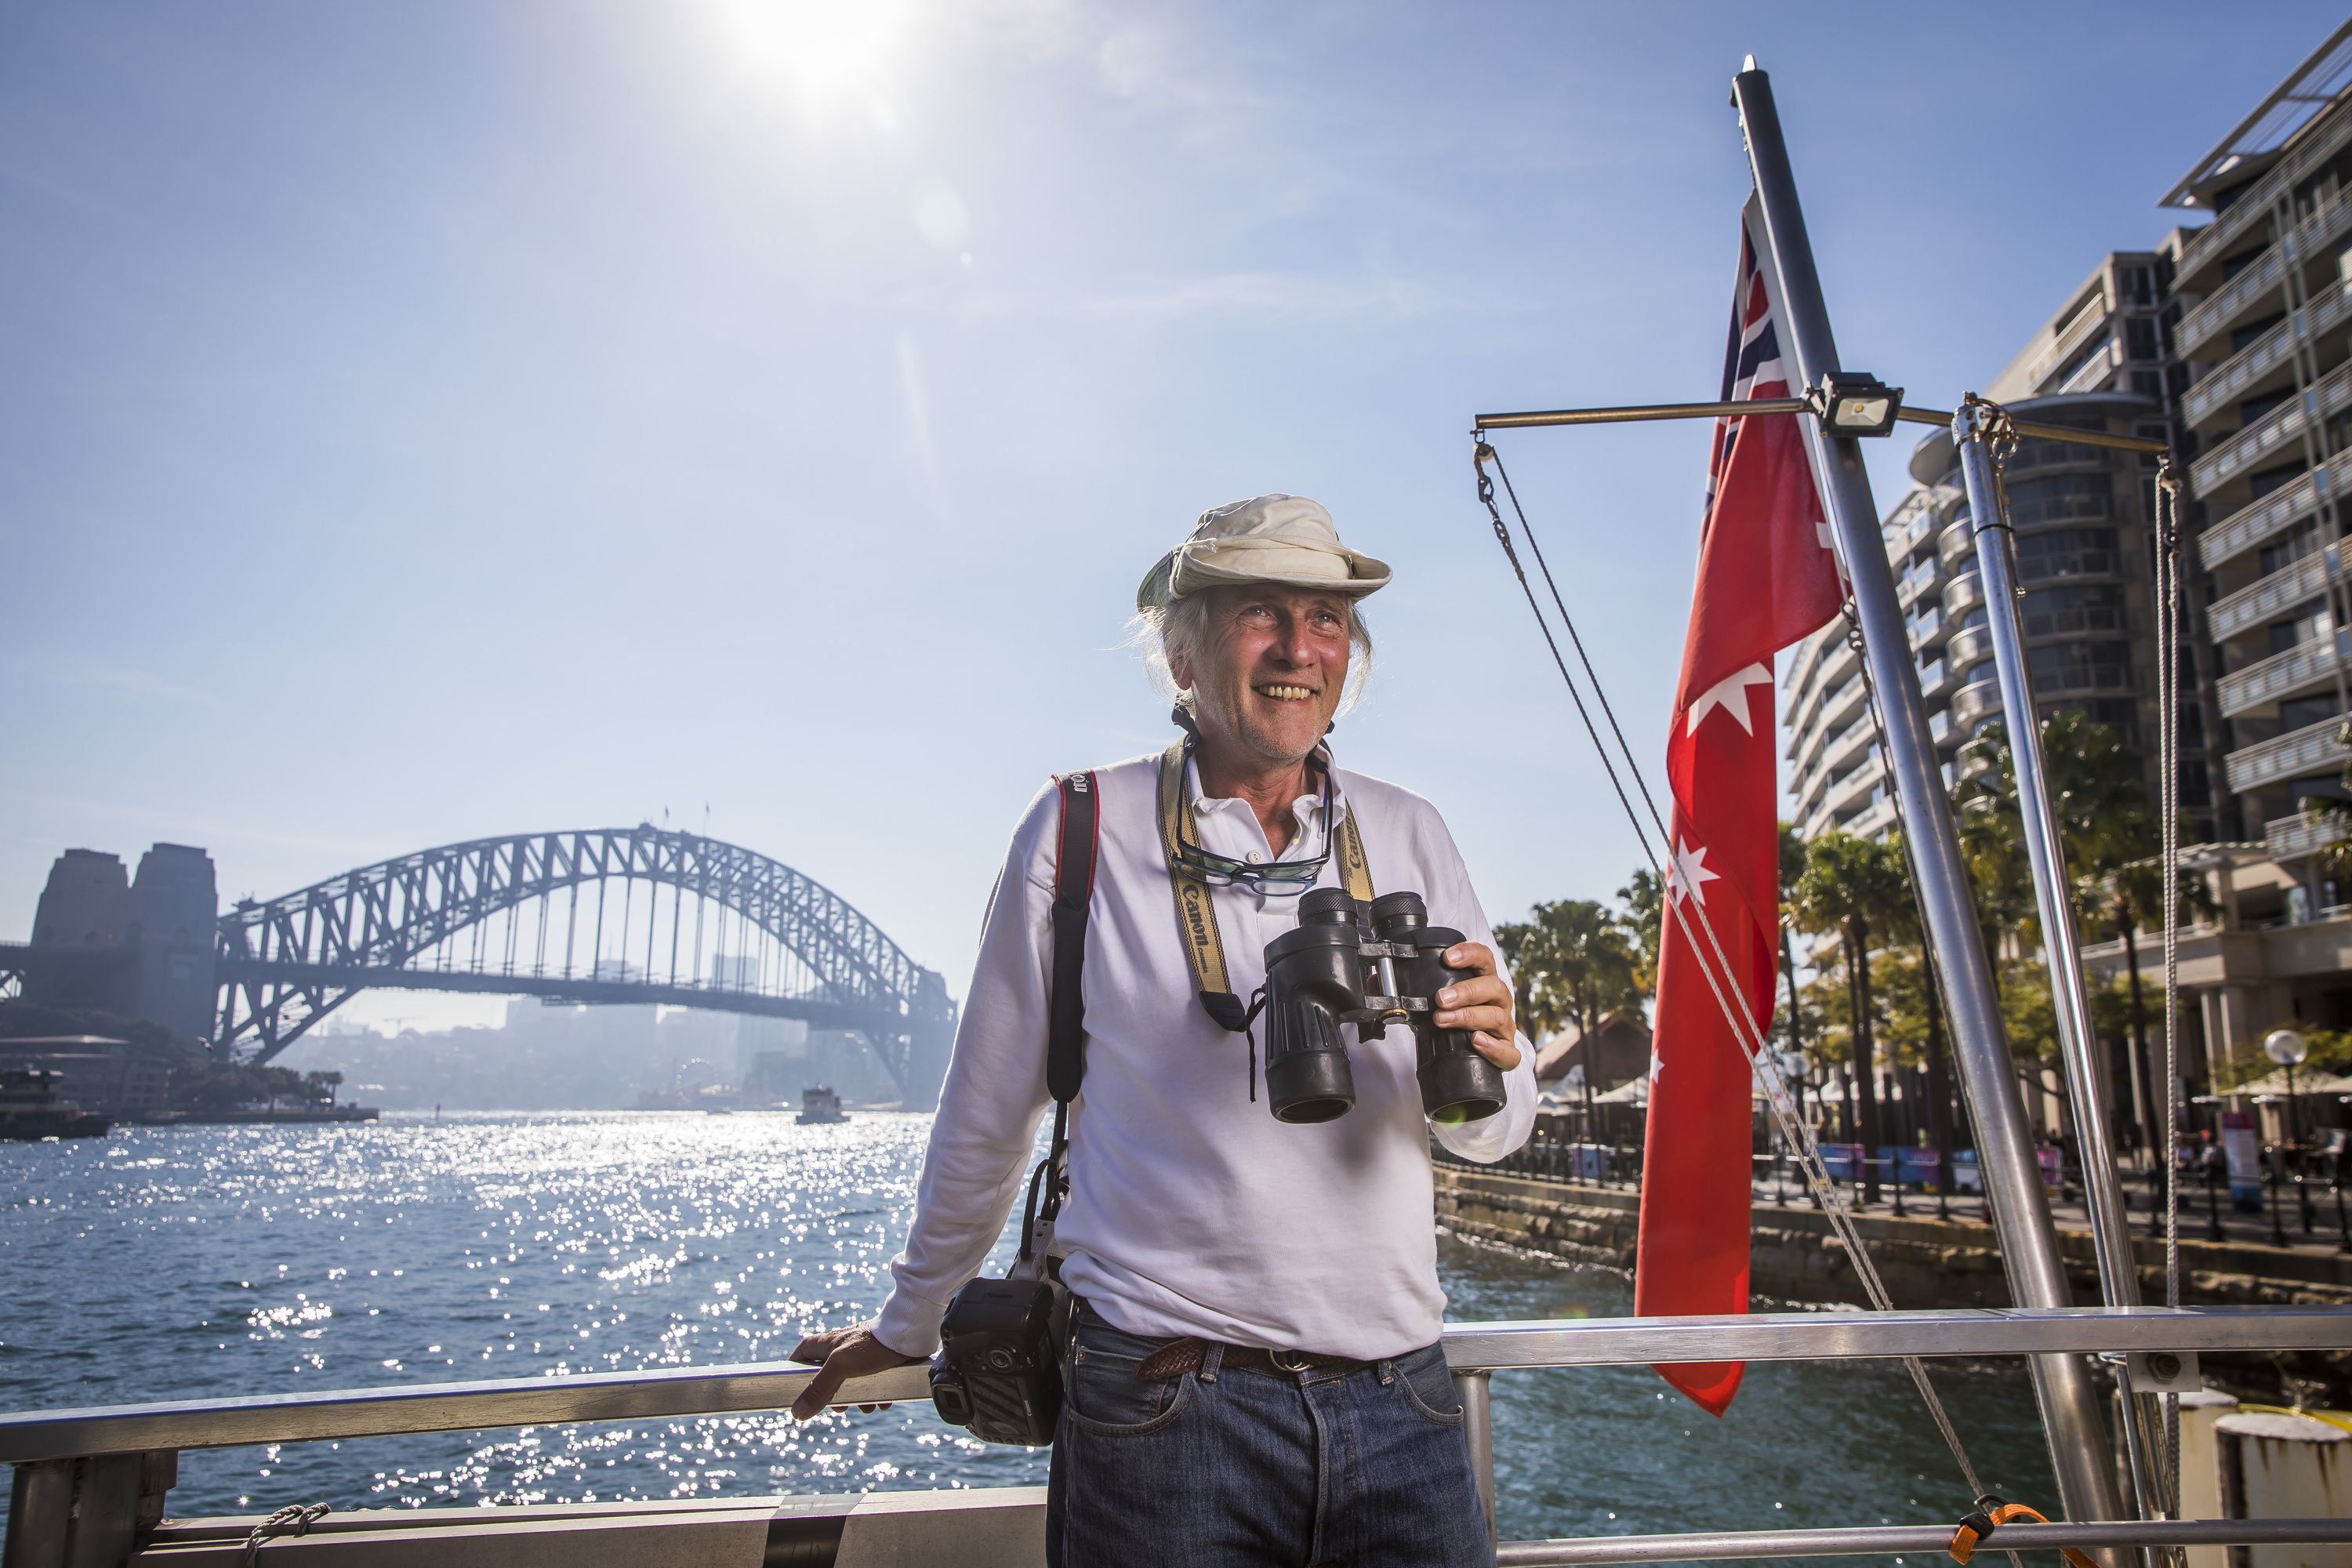 Biggles, Oz Whale Watching tour guide, standing on a boat by Sydney Harbour